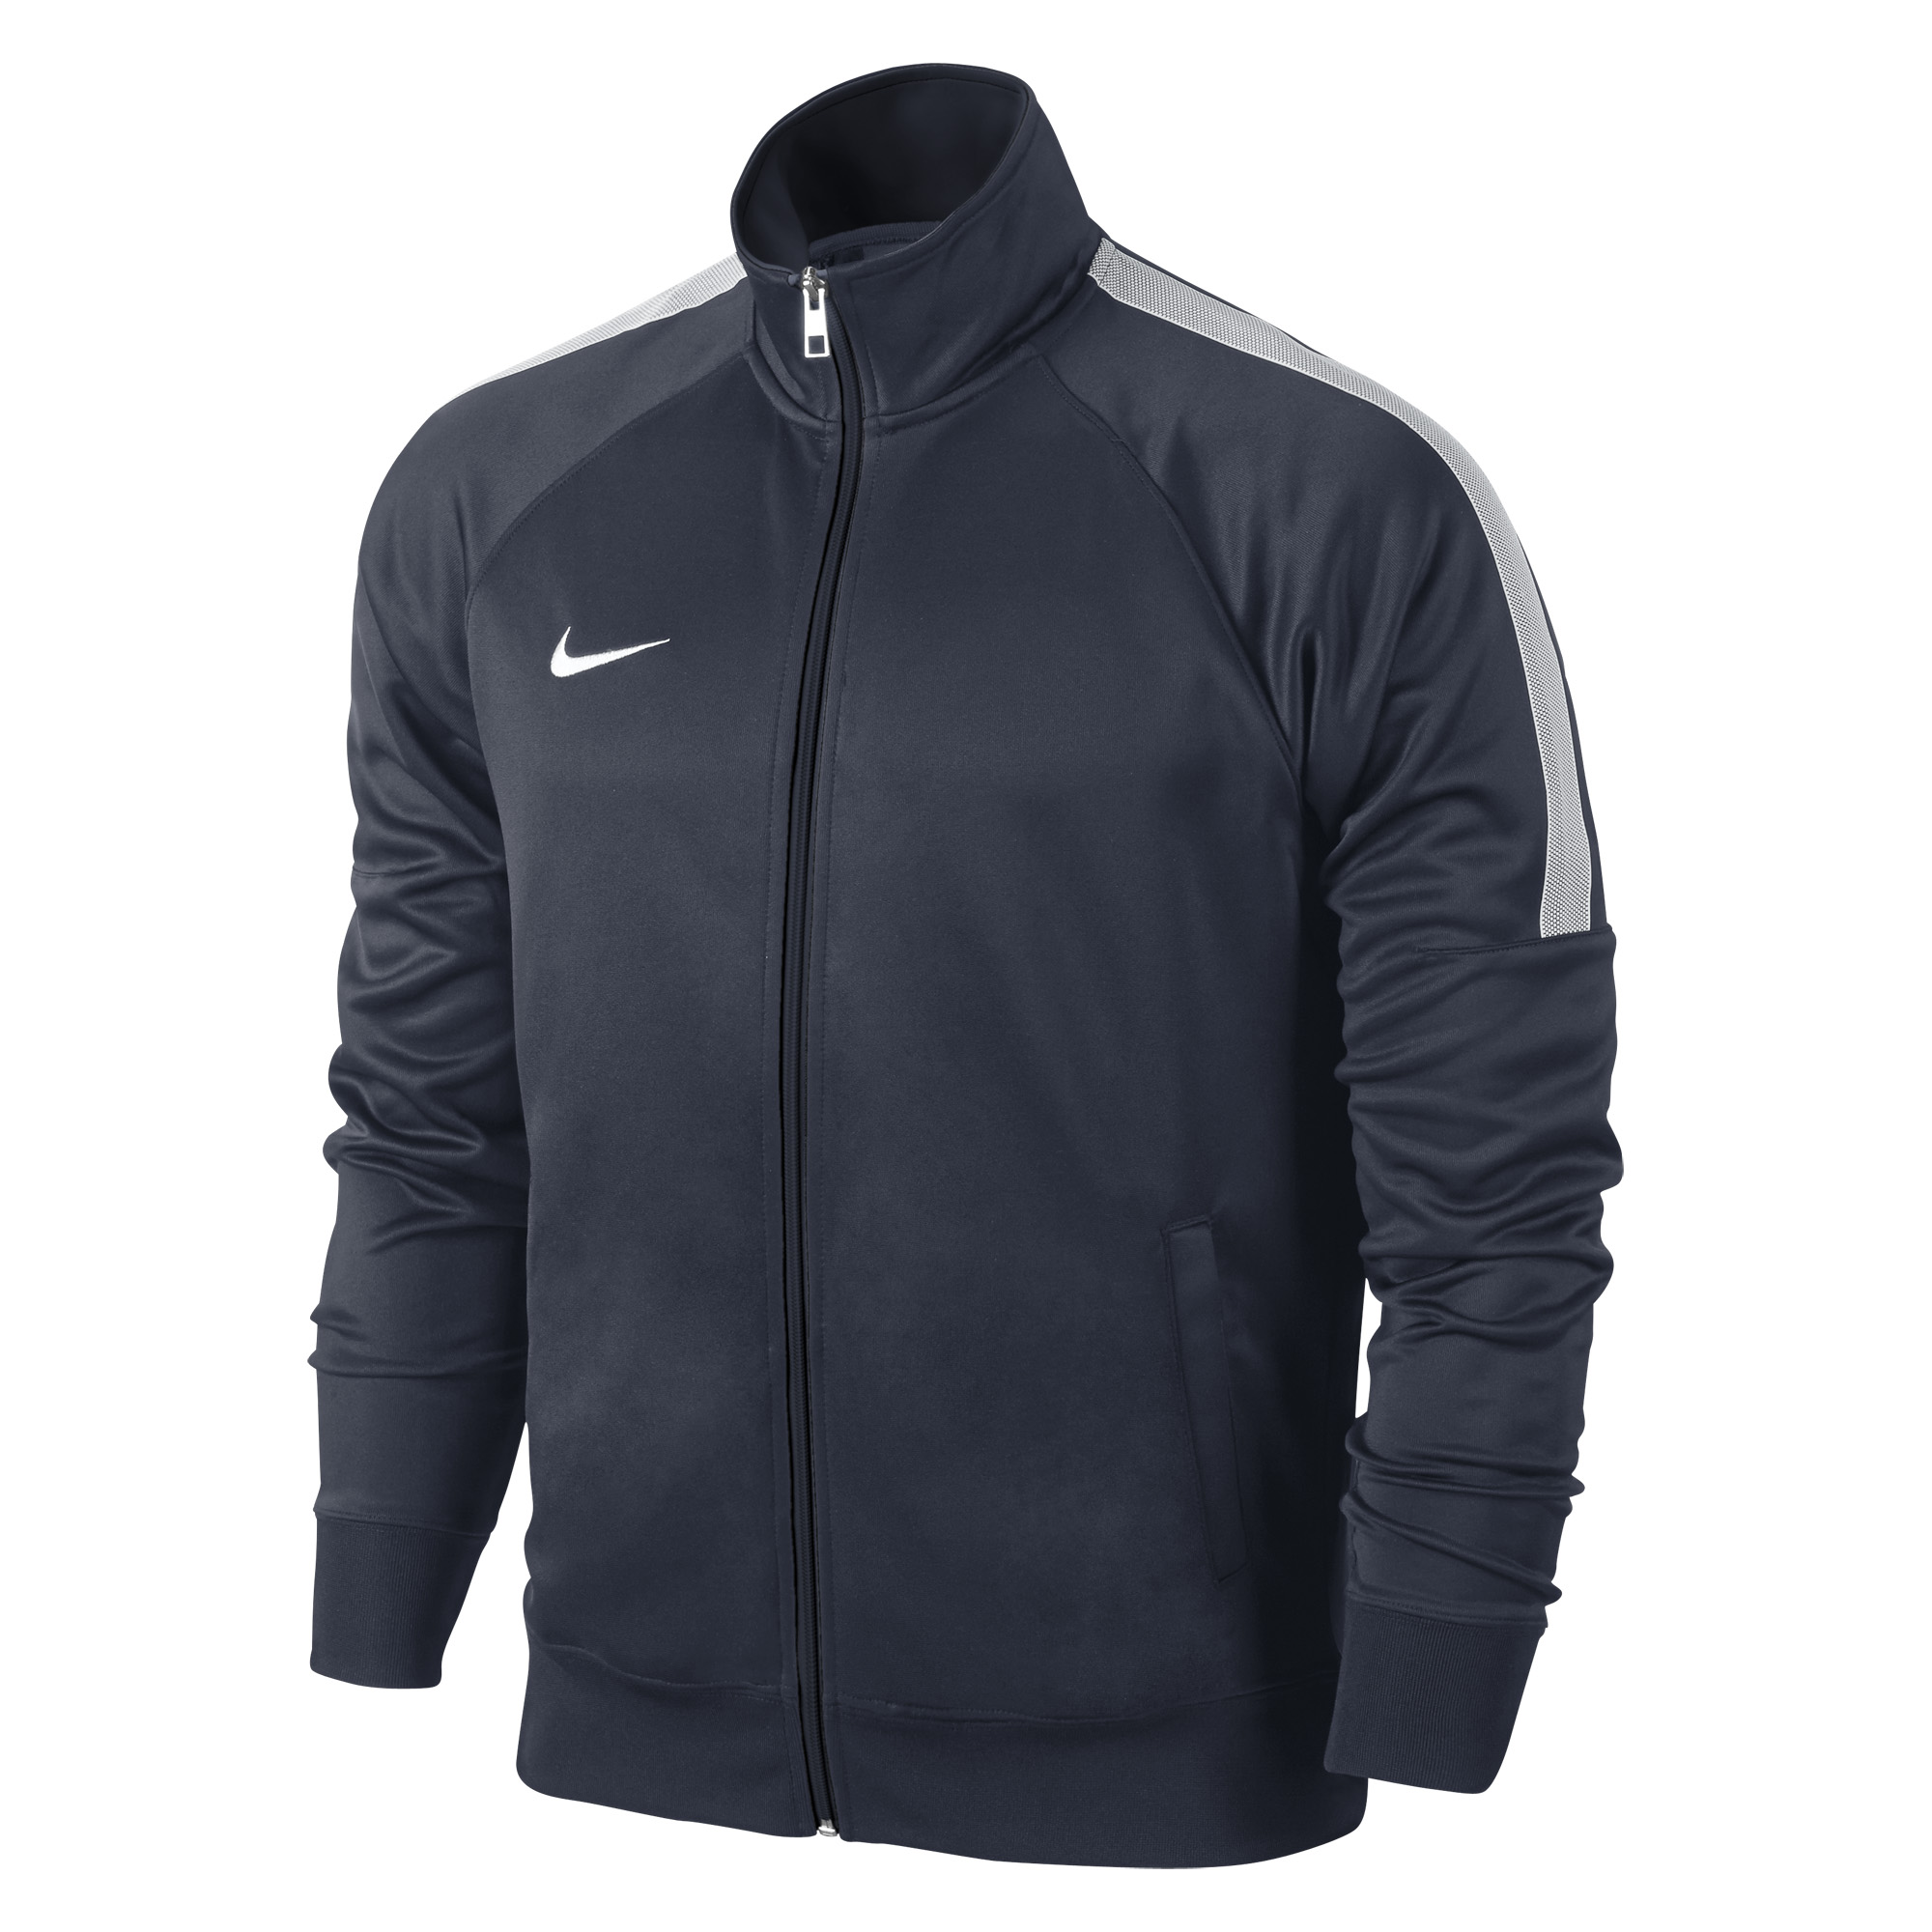 Nike Kinder Trainingsjacke Team Club Trainer Jacket 658940-451 128-137